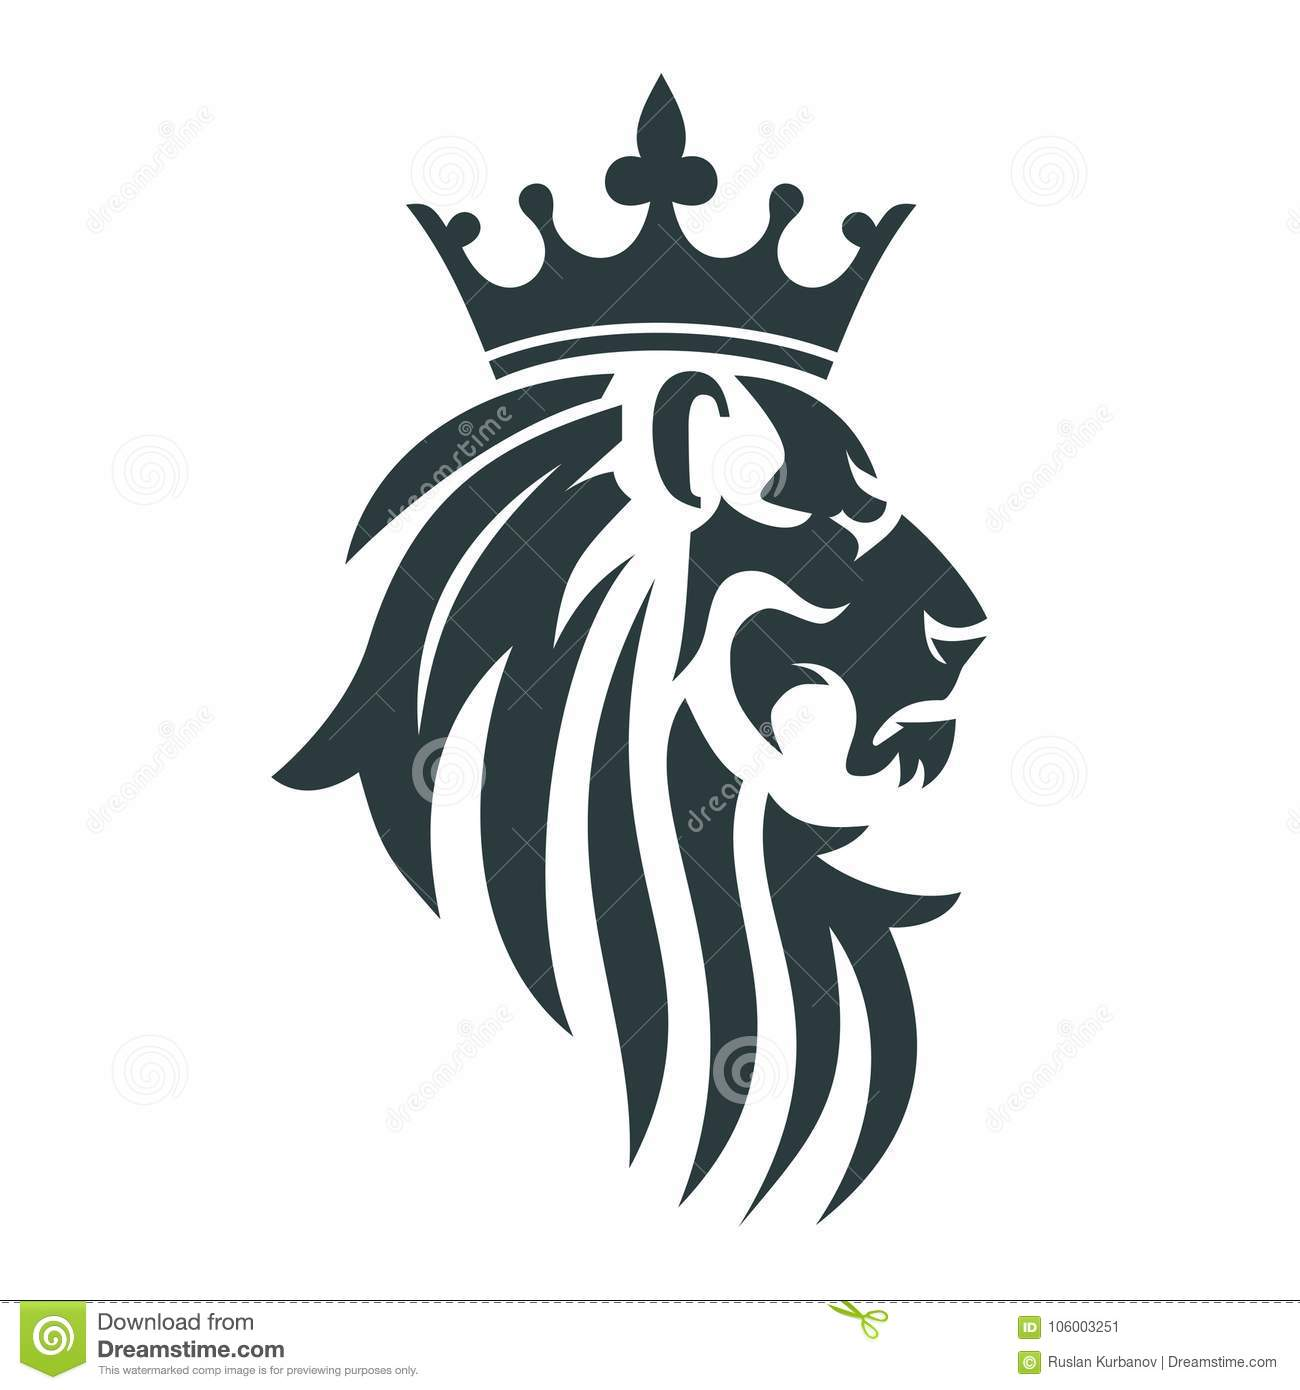 Lion Royal Stock Illustrations 8 041 Lion Royal Stock Illustrations Vectors Clipart Dreamstime Ethnic hand drawing head of lion wearing crown. https www dreamstime com head lion royal crown vector illustration template business image106003251